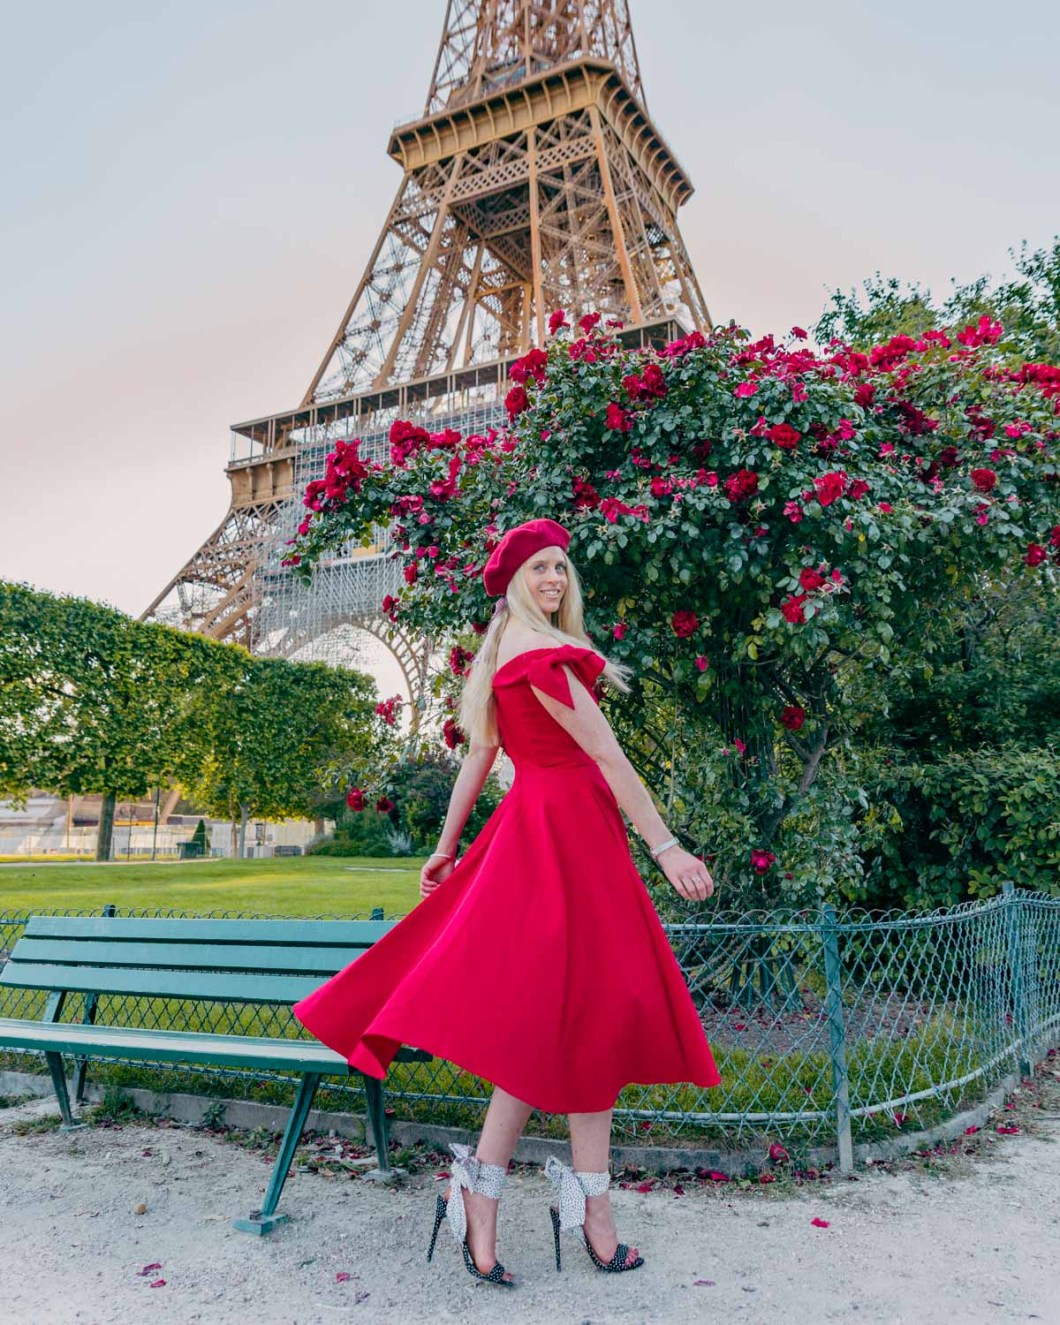 Roses at the Eiffel Tower in the Champ de Mars - Paris